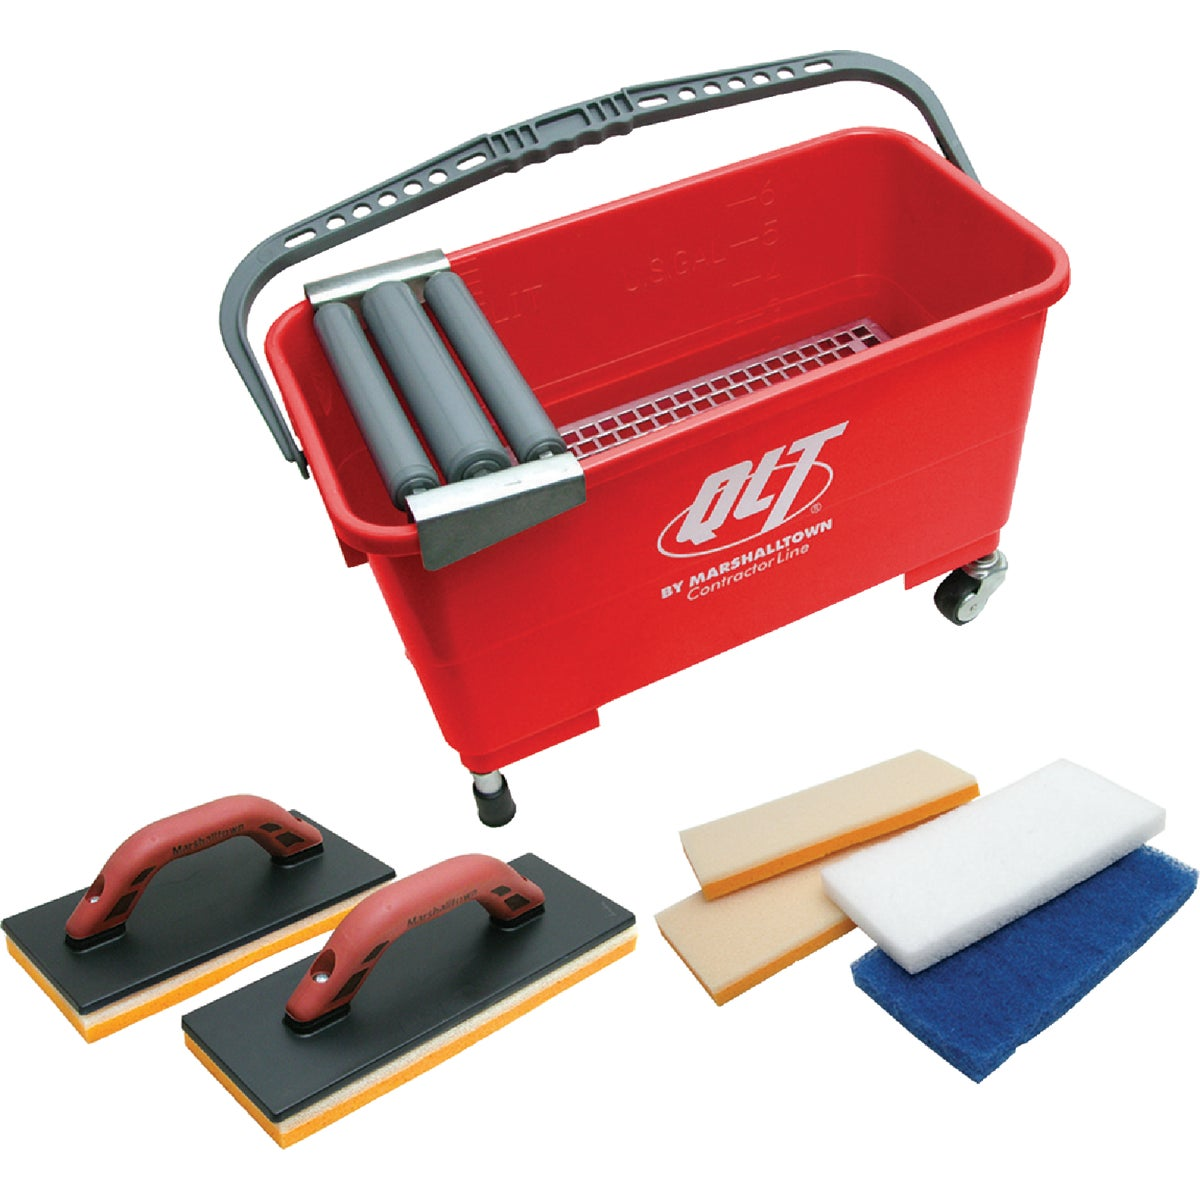 DELUXE GROUT SYSTEM - 16791 by Marshalltown Trowel